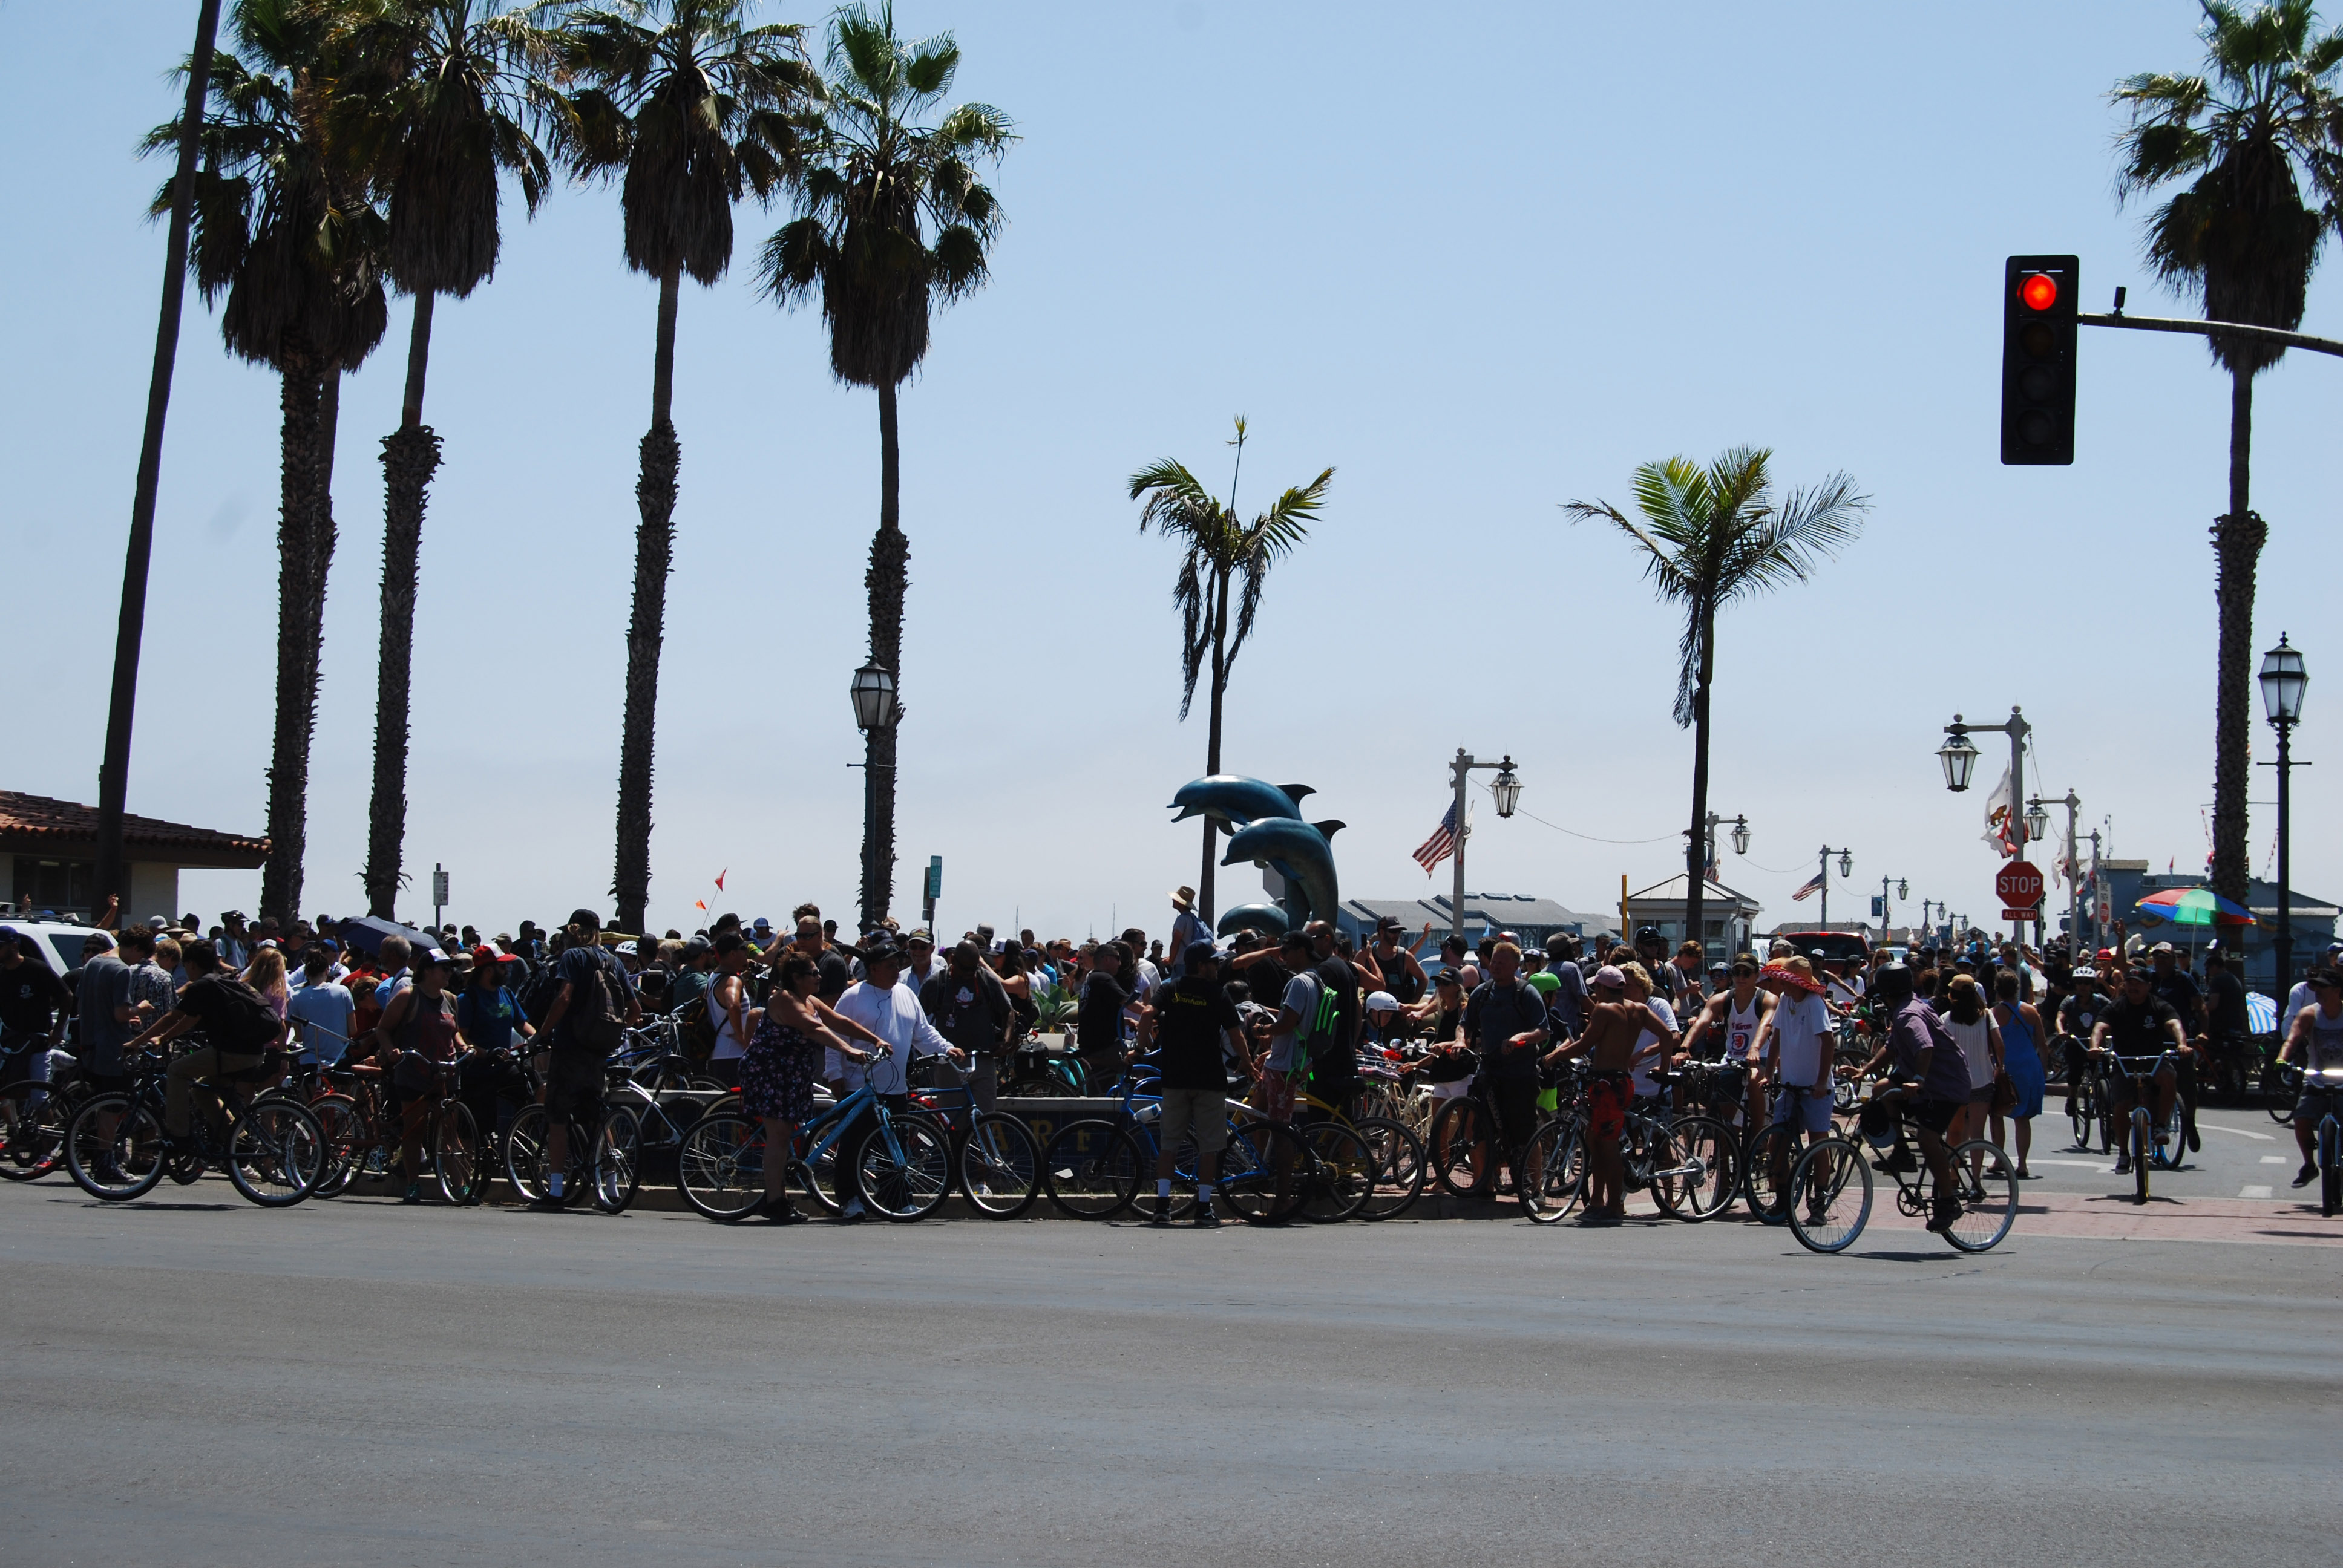 Bicyclists gather at Santa Barbara's Stearns Wharf on Sunday morning to join in the annual Fiesta cruiser ride across the South Coast.